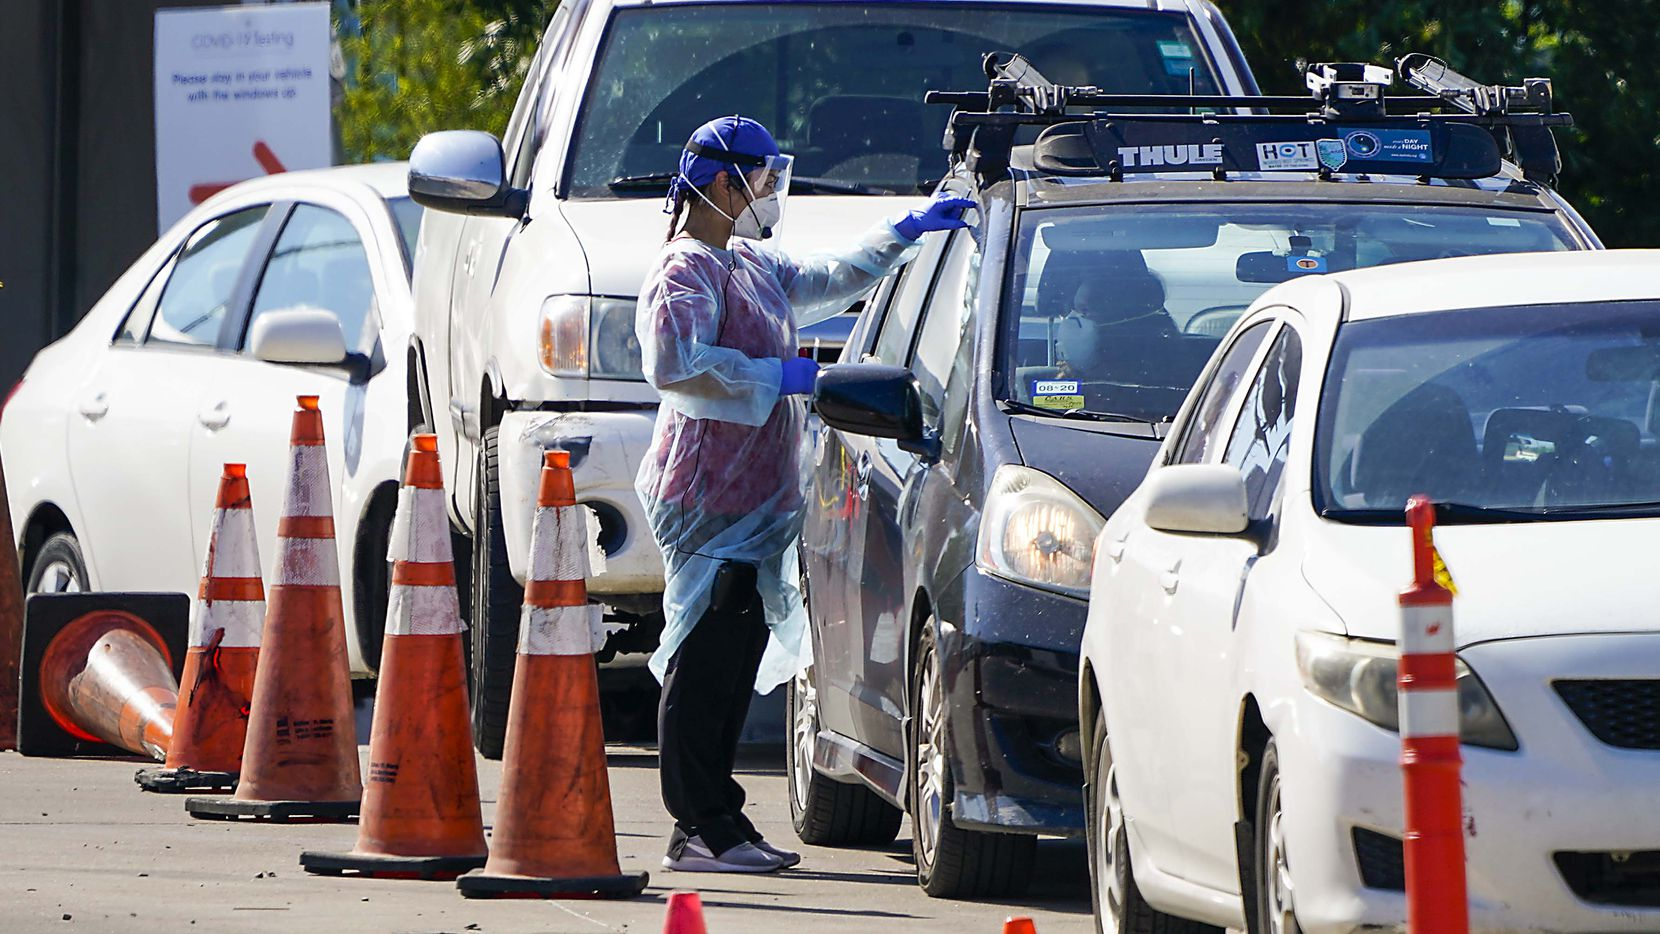 A health care worker interacts with motorists at a drive through COVID-19 testing facility at CitySquare on Wednesday, June 17, 2020, in Dallas. The COVID-19 testing center in South Dallas is a partnership between the City of Dallas, Dallas County, CitySquare and Kroger Health.